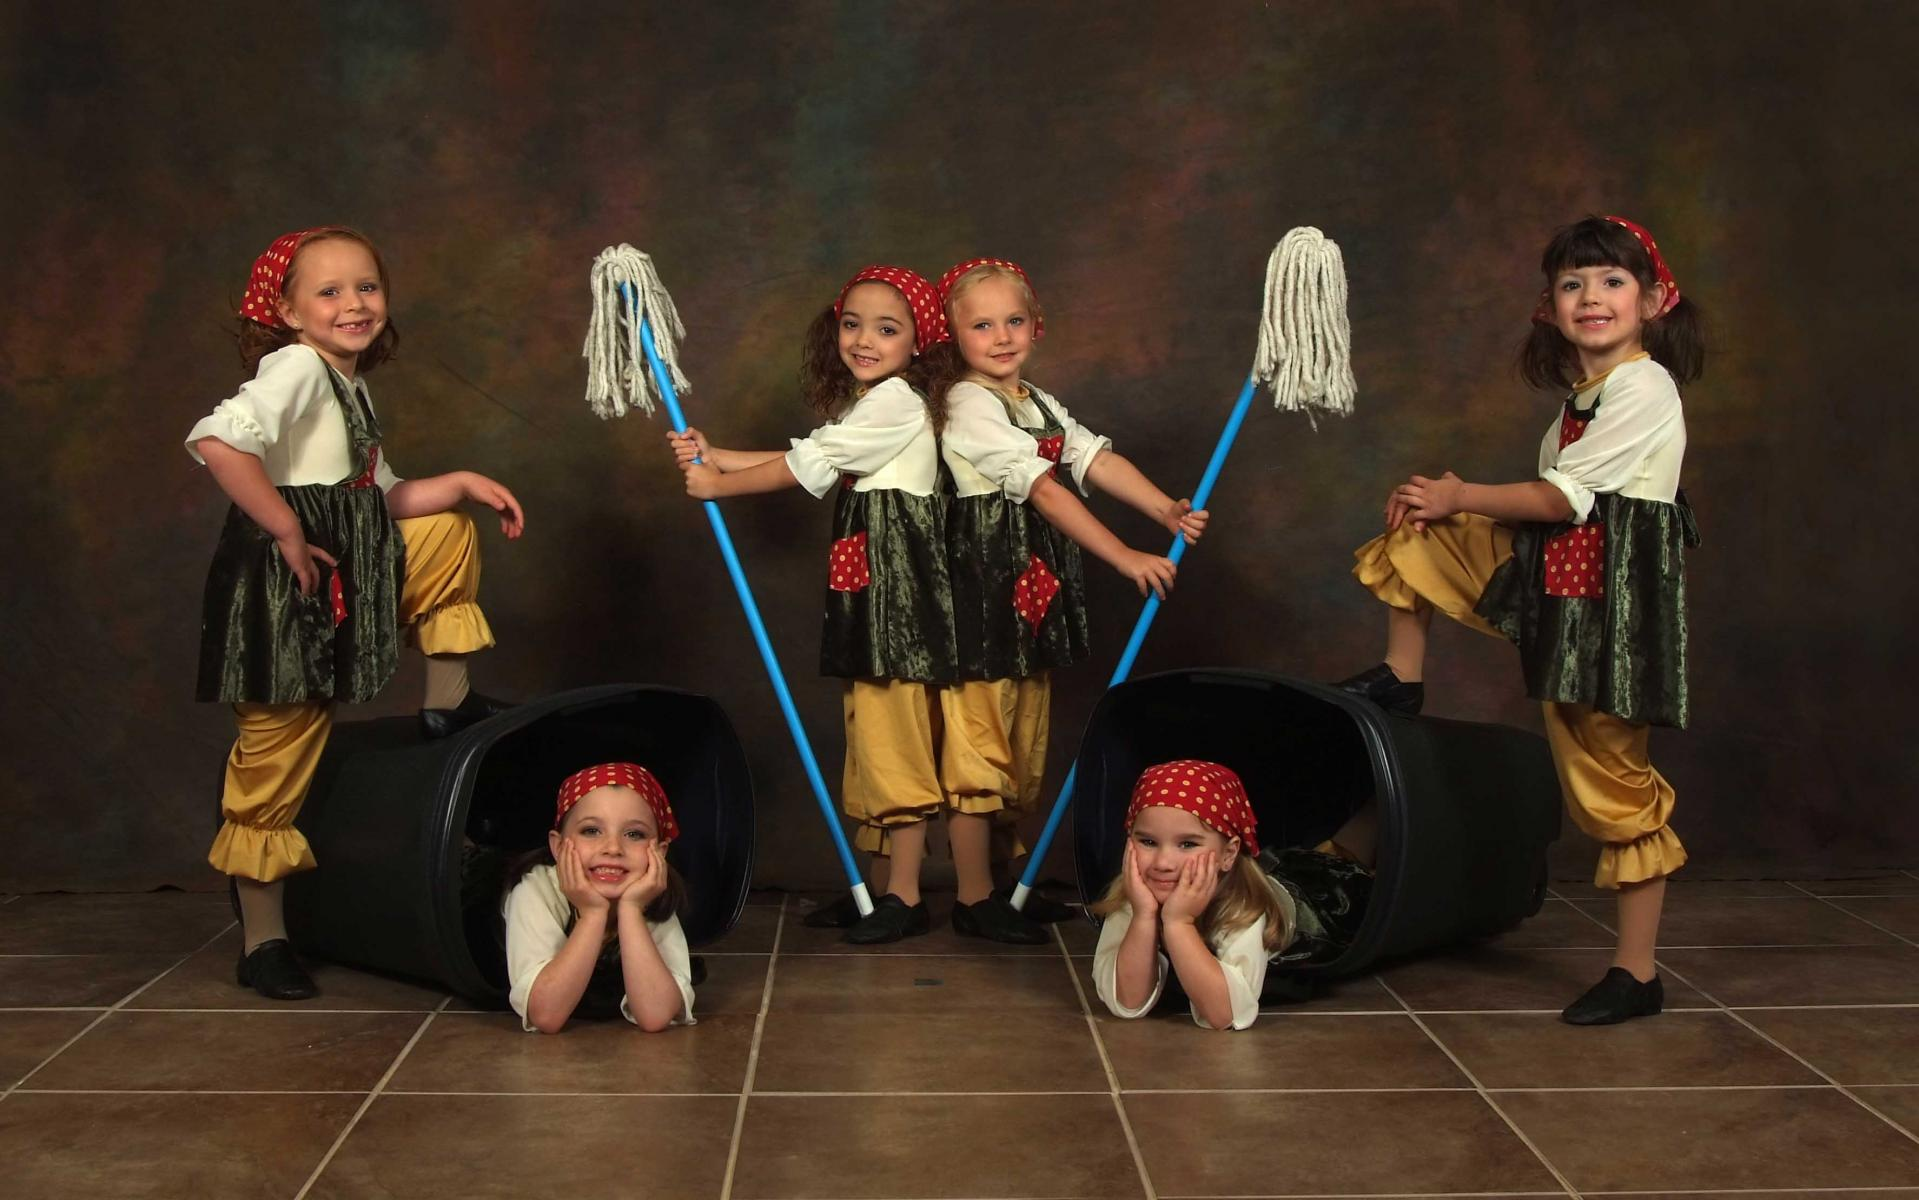 Captivating Childrens Portraiture